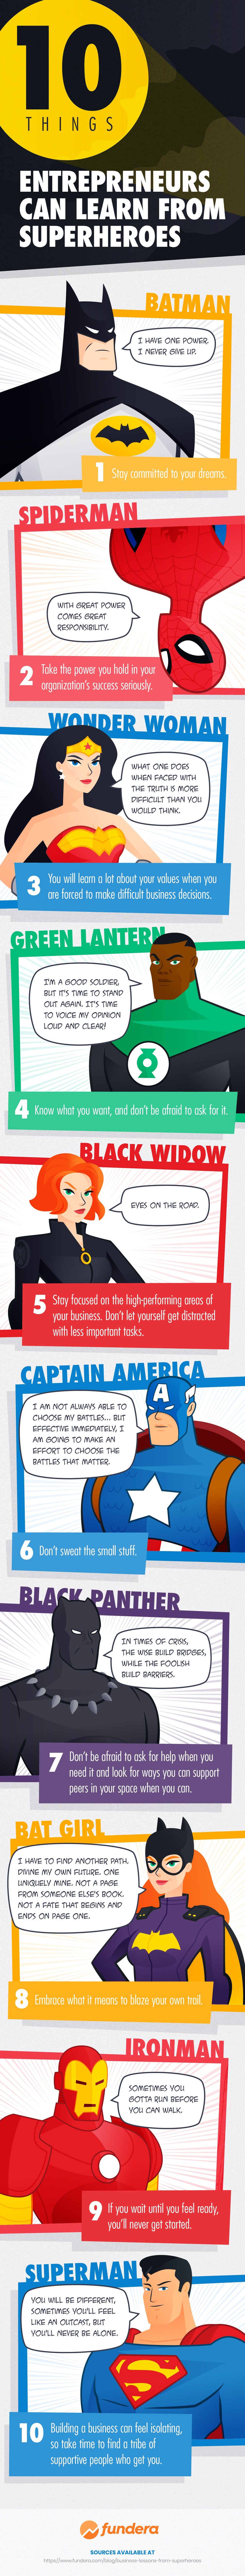 10 Things You Can Learn From Superheroes